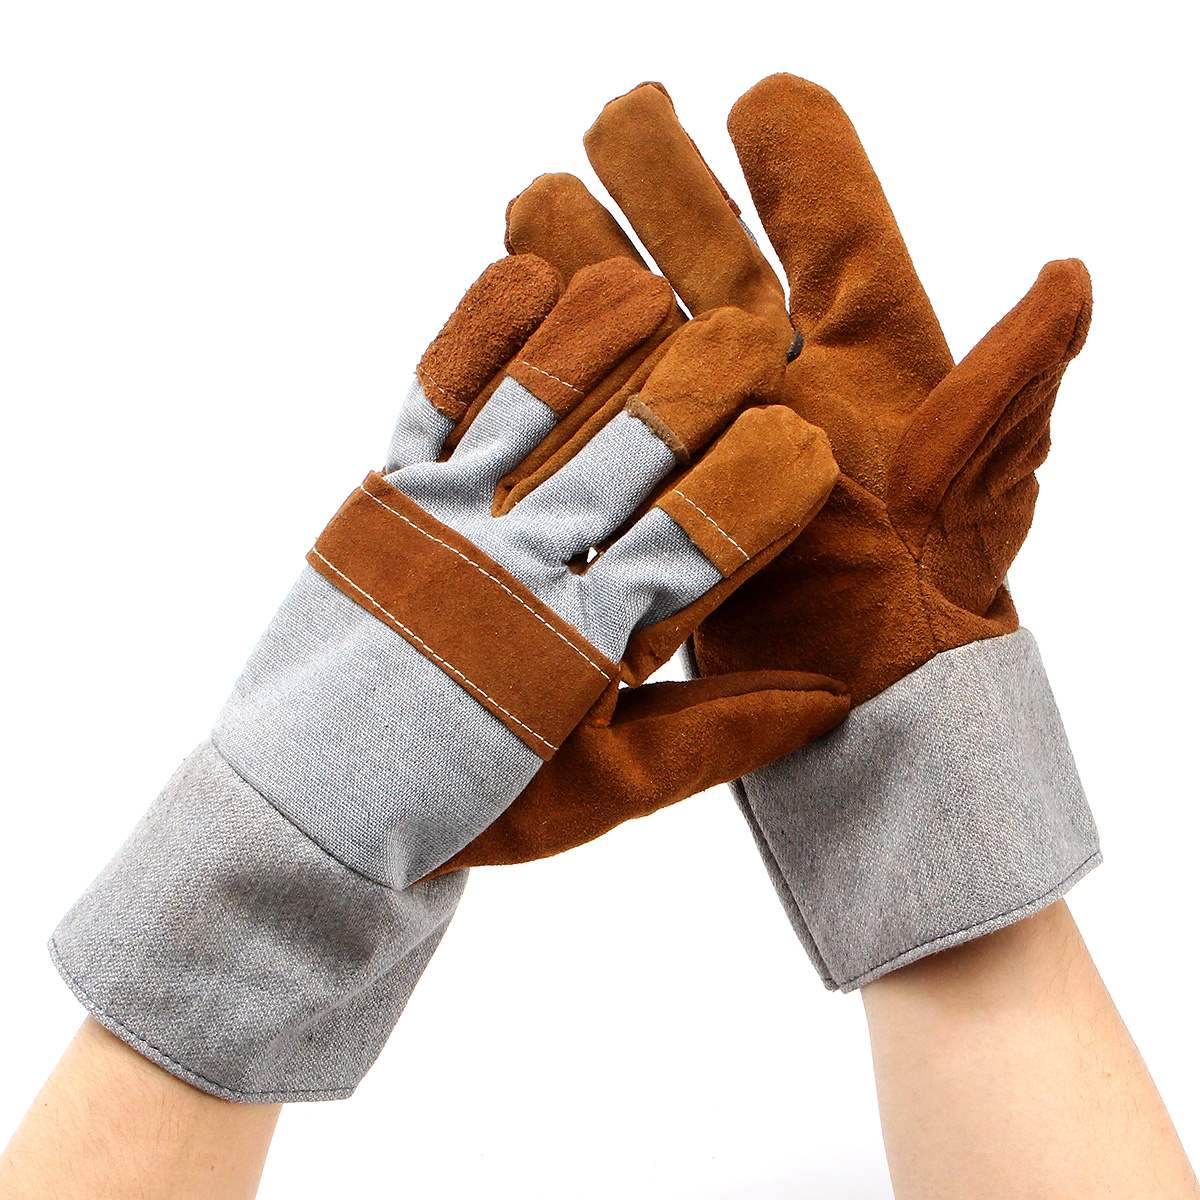 Welding WELDERS Work Soft Cowhide Leather Plus Gloves For protecting hand Safety gloves welding welders work soft cowhide